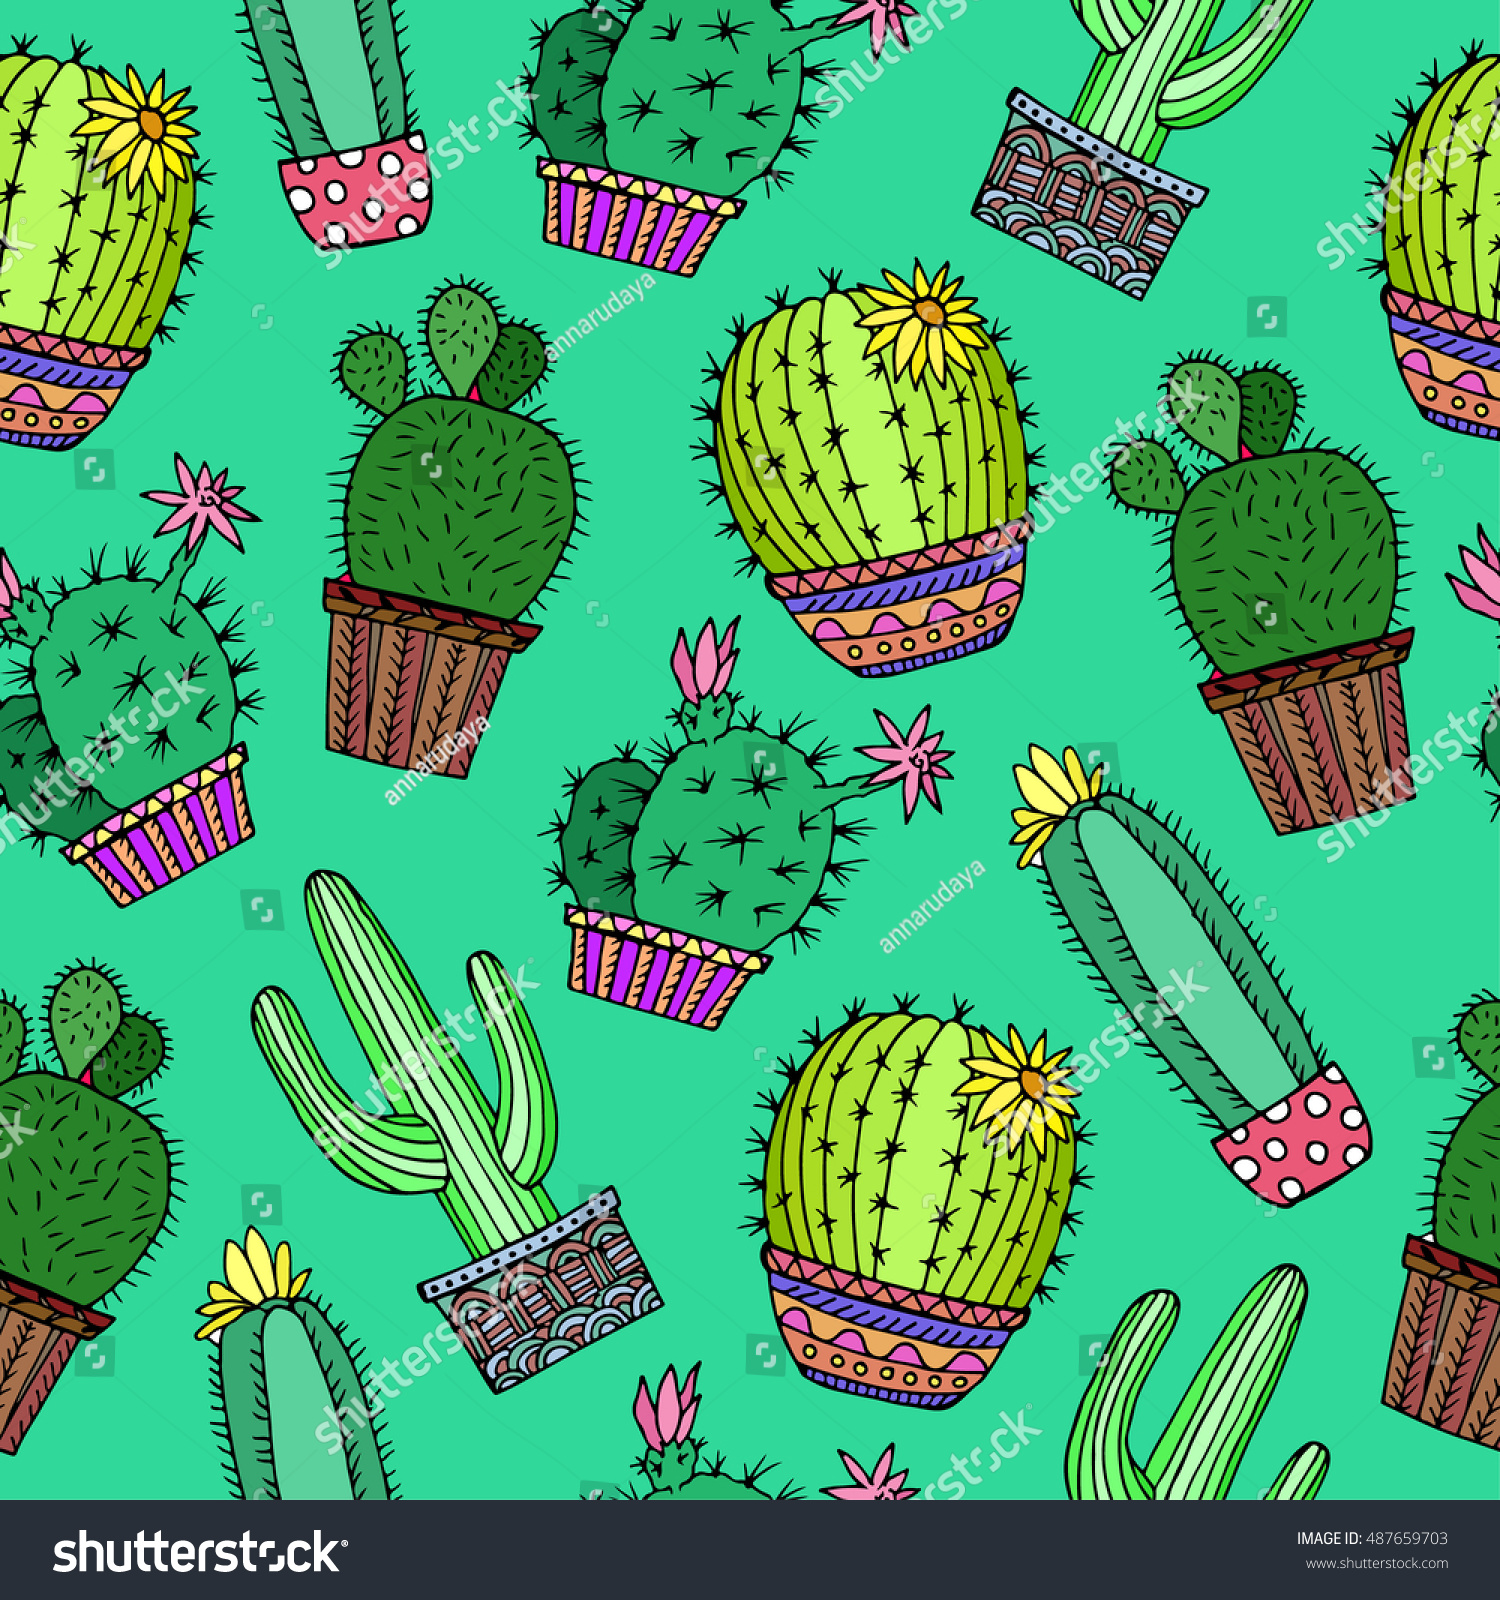 Simple Wallpaper Green Birthday - stock-vector-cactus-plant-background-seamless-pattern-green-with-flower-doodle-floral-vector-illustration-487659703  2018_811331 .jpg